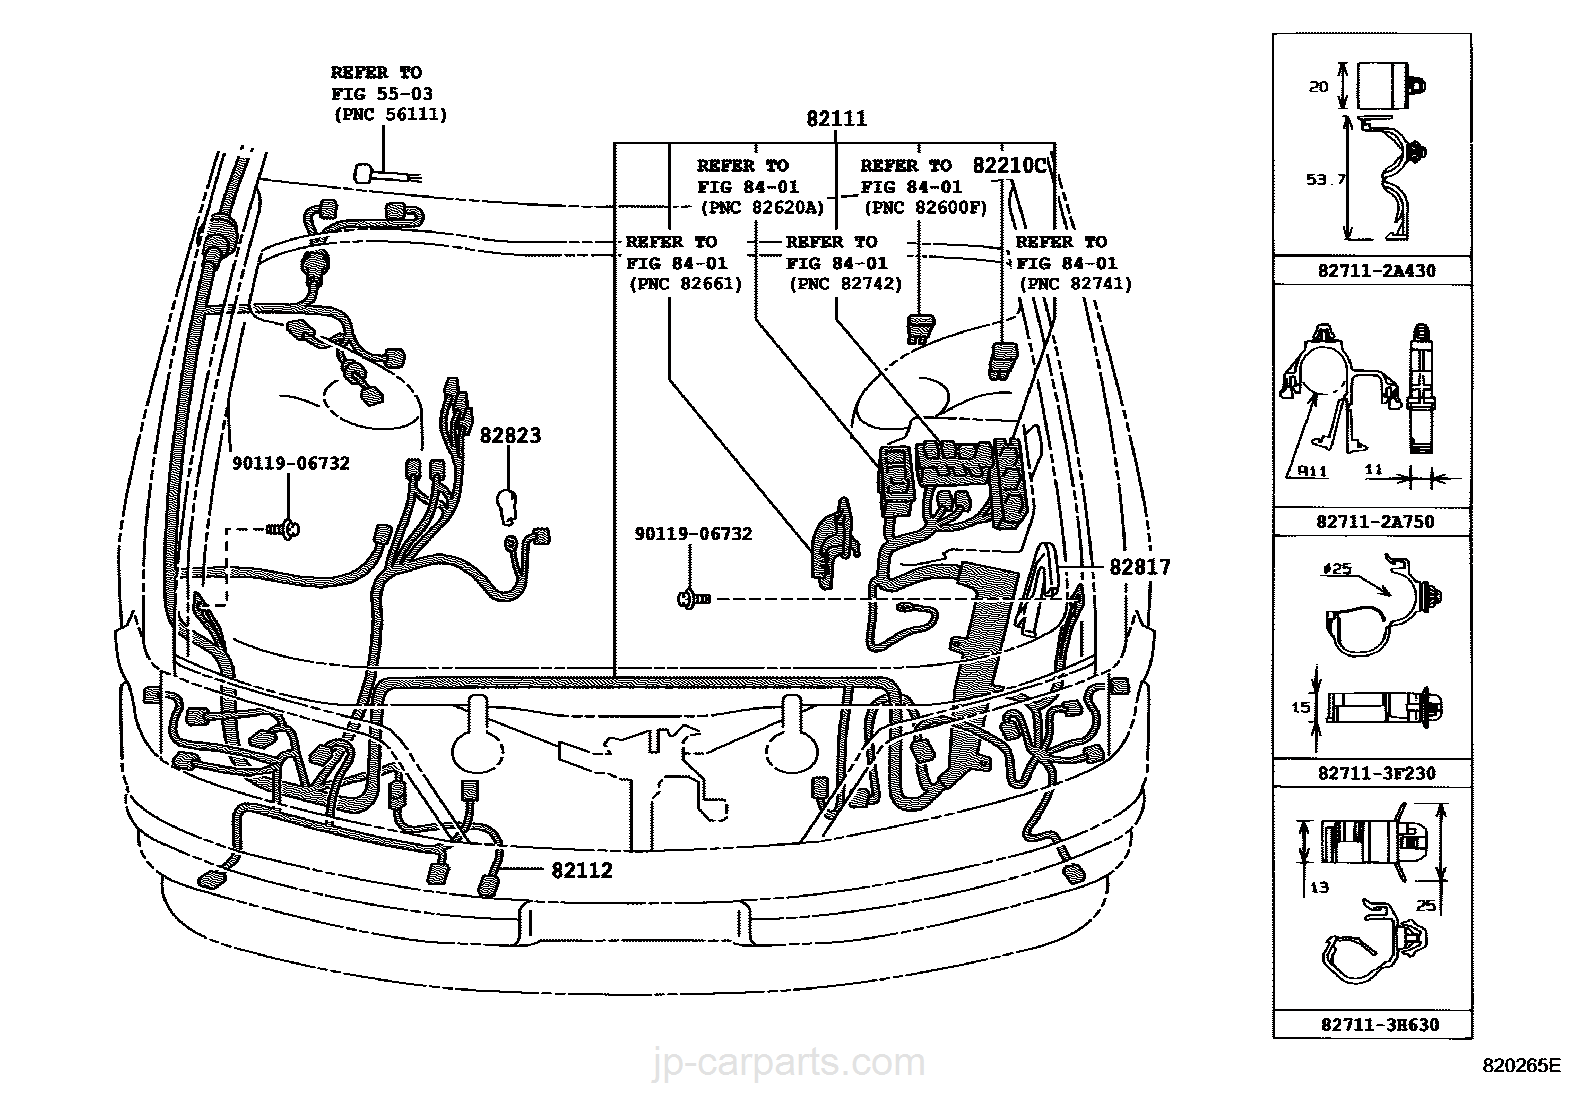 Toyota Chaser Jzx100 Wiring Diagram Enthusiast Wiring Diagrams Source ·  Select image size